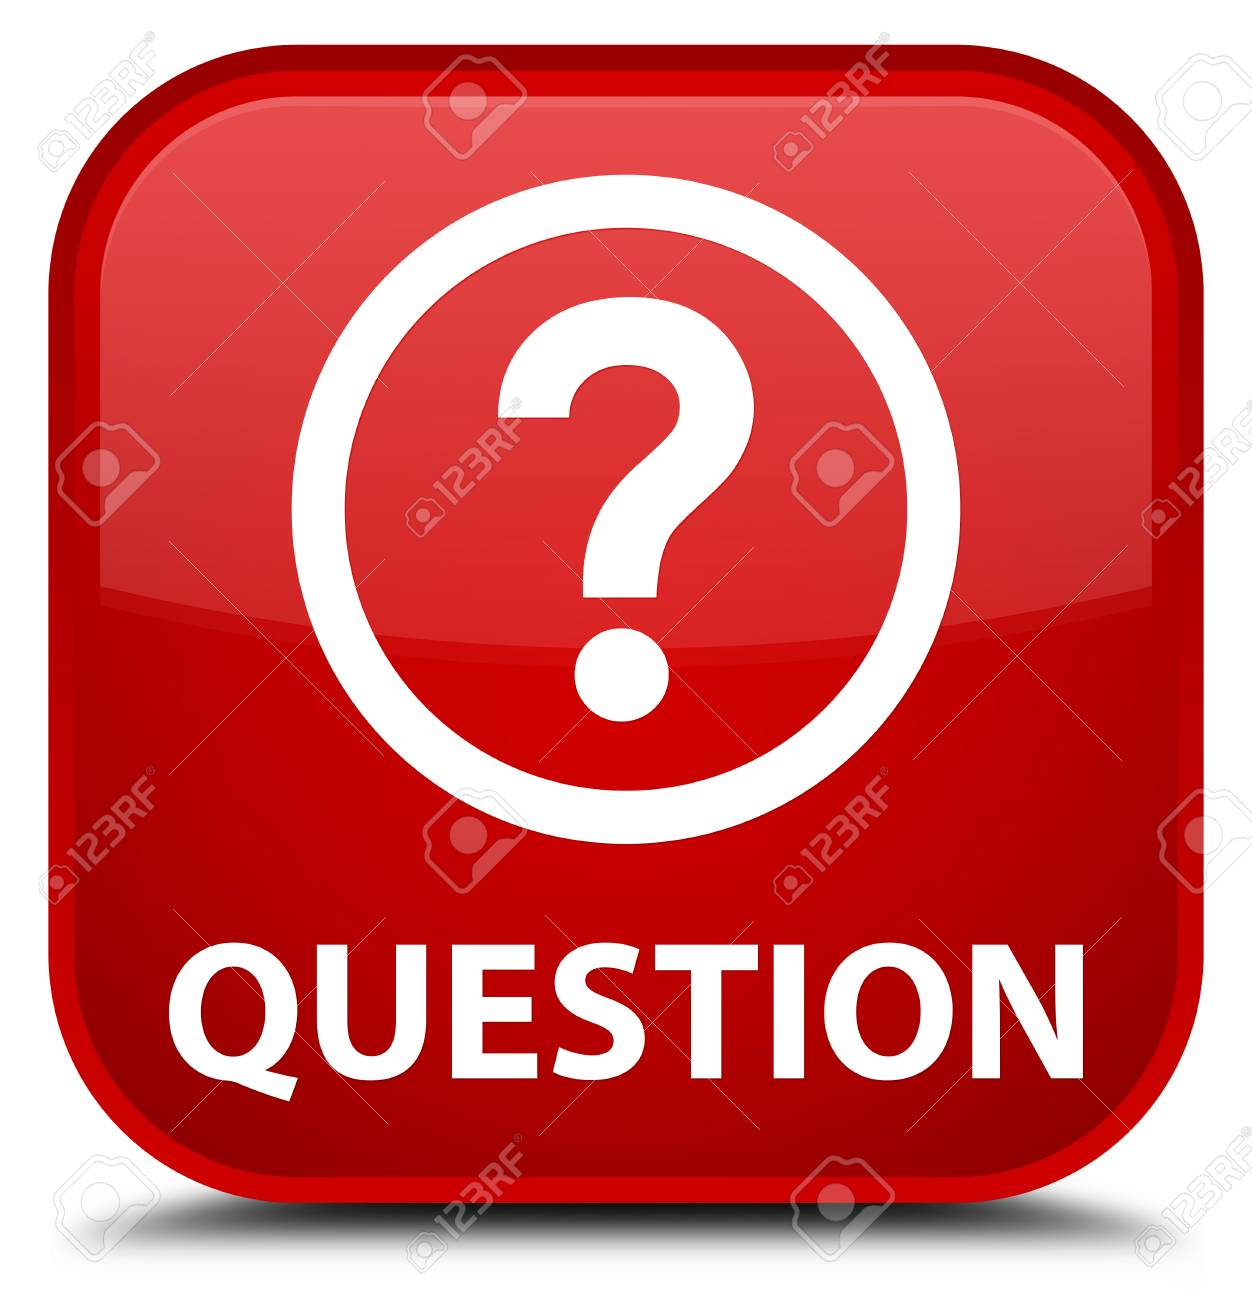 Question red square button - 56006480